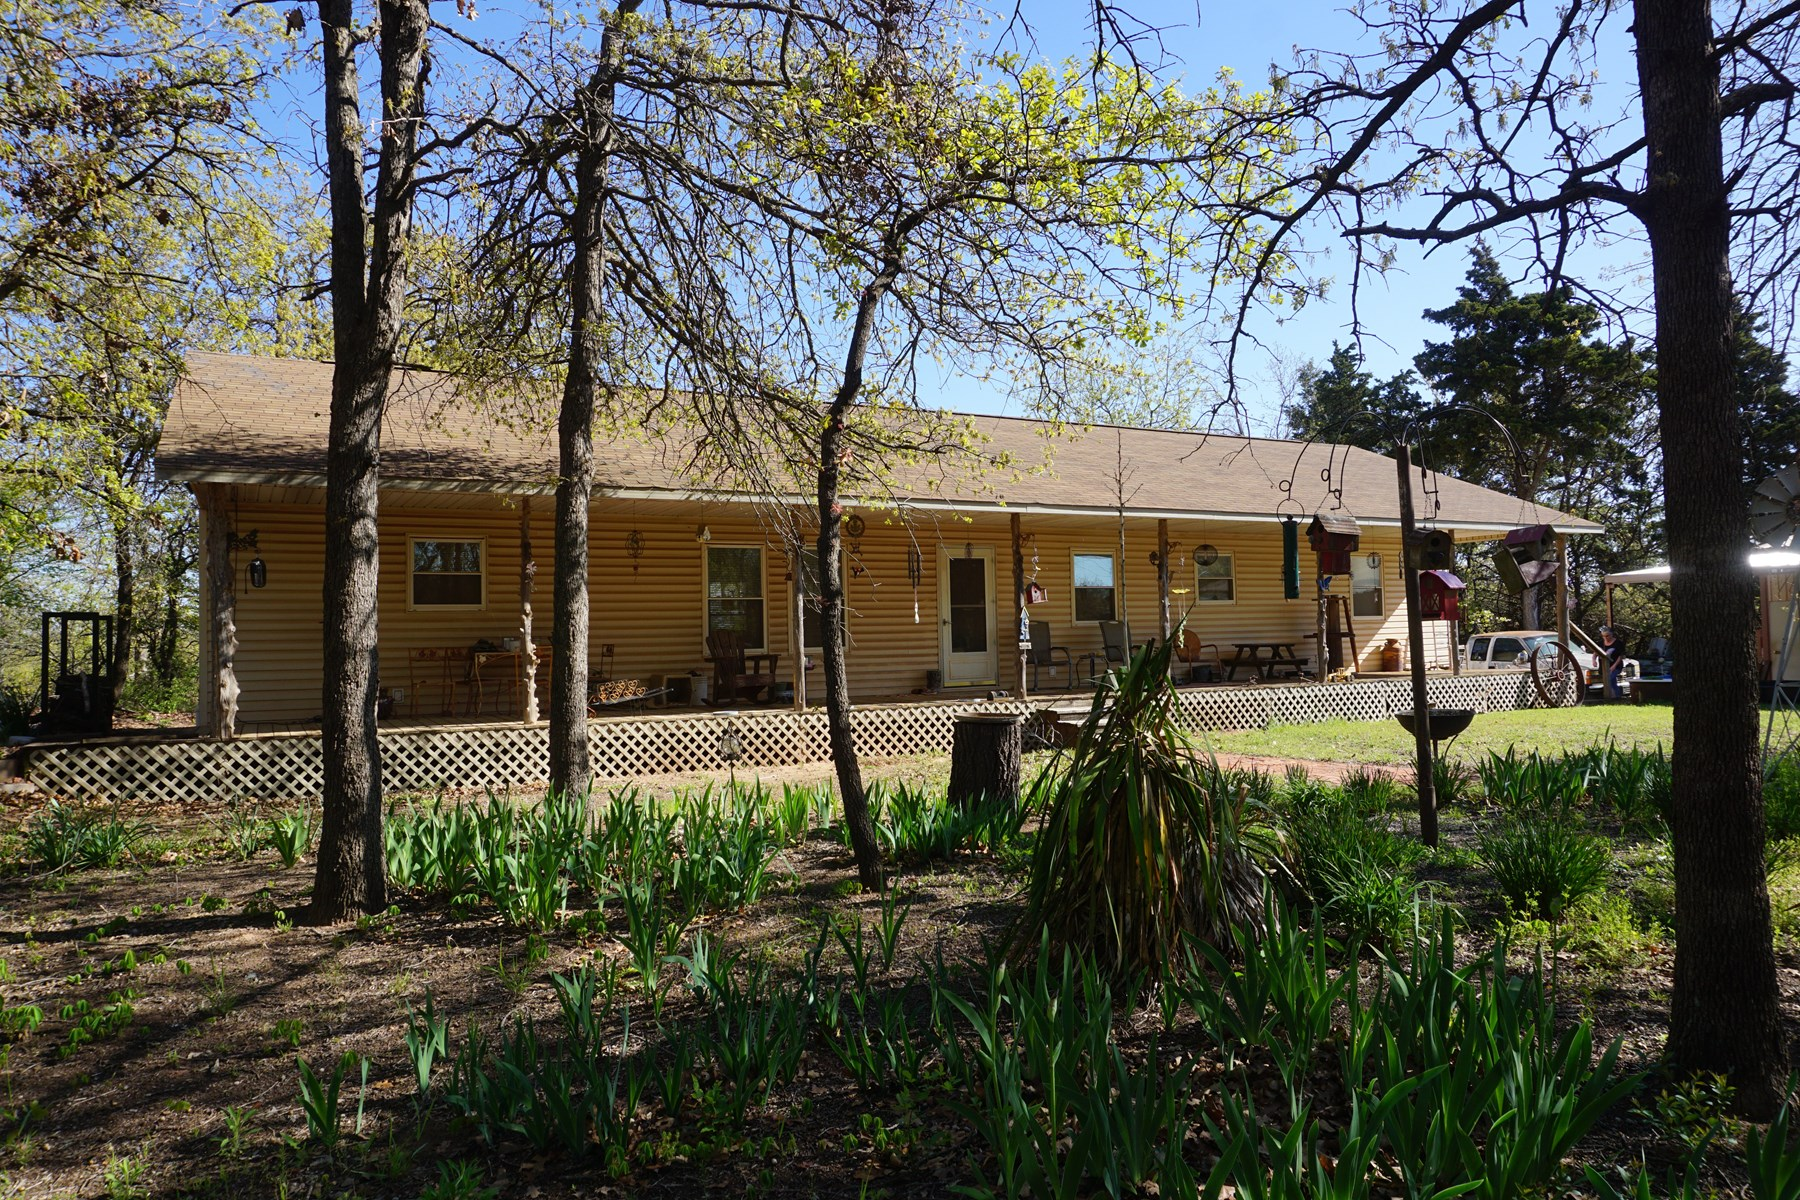 No Reserve Auction, Home on 30 Ac, Carney, OK May 16 @ 2:30